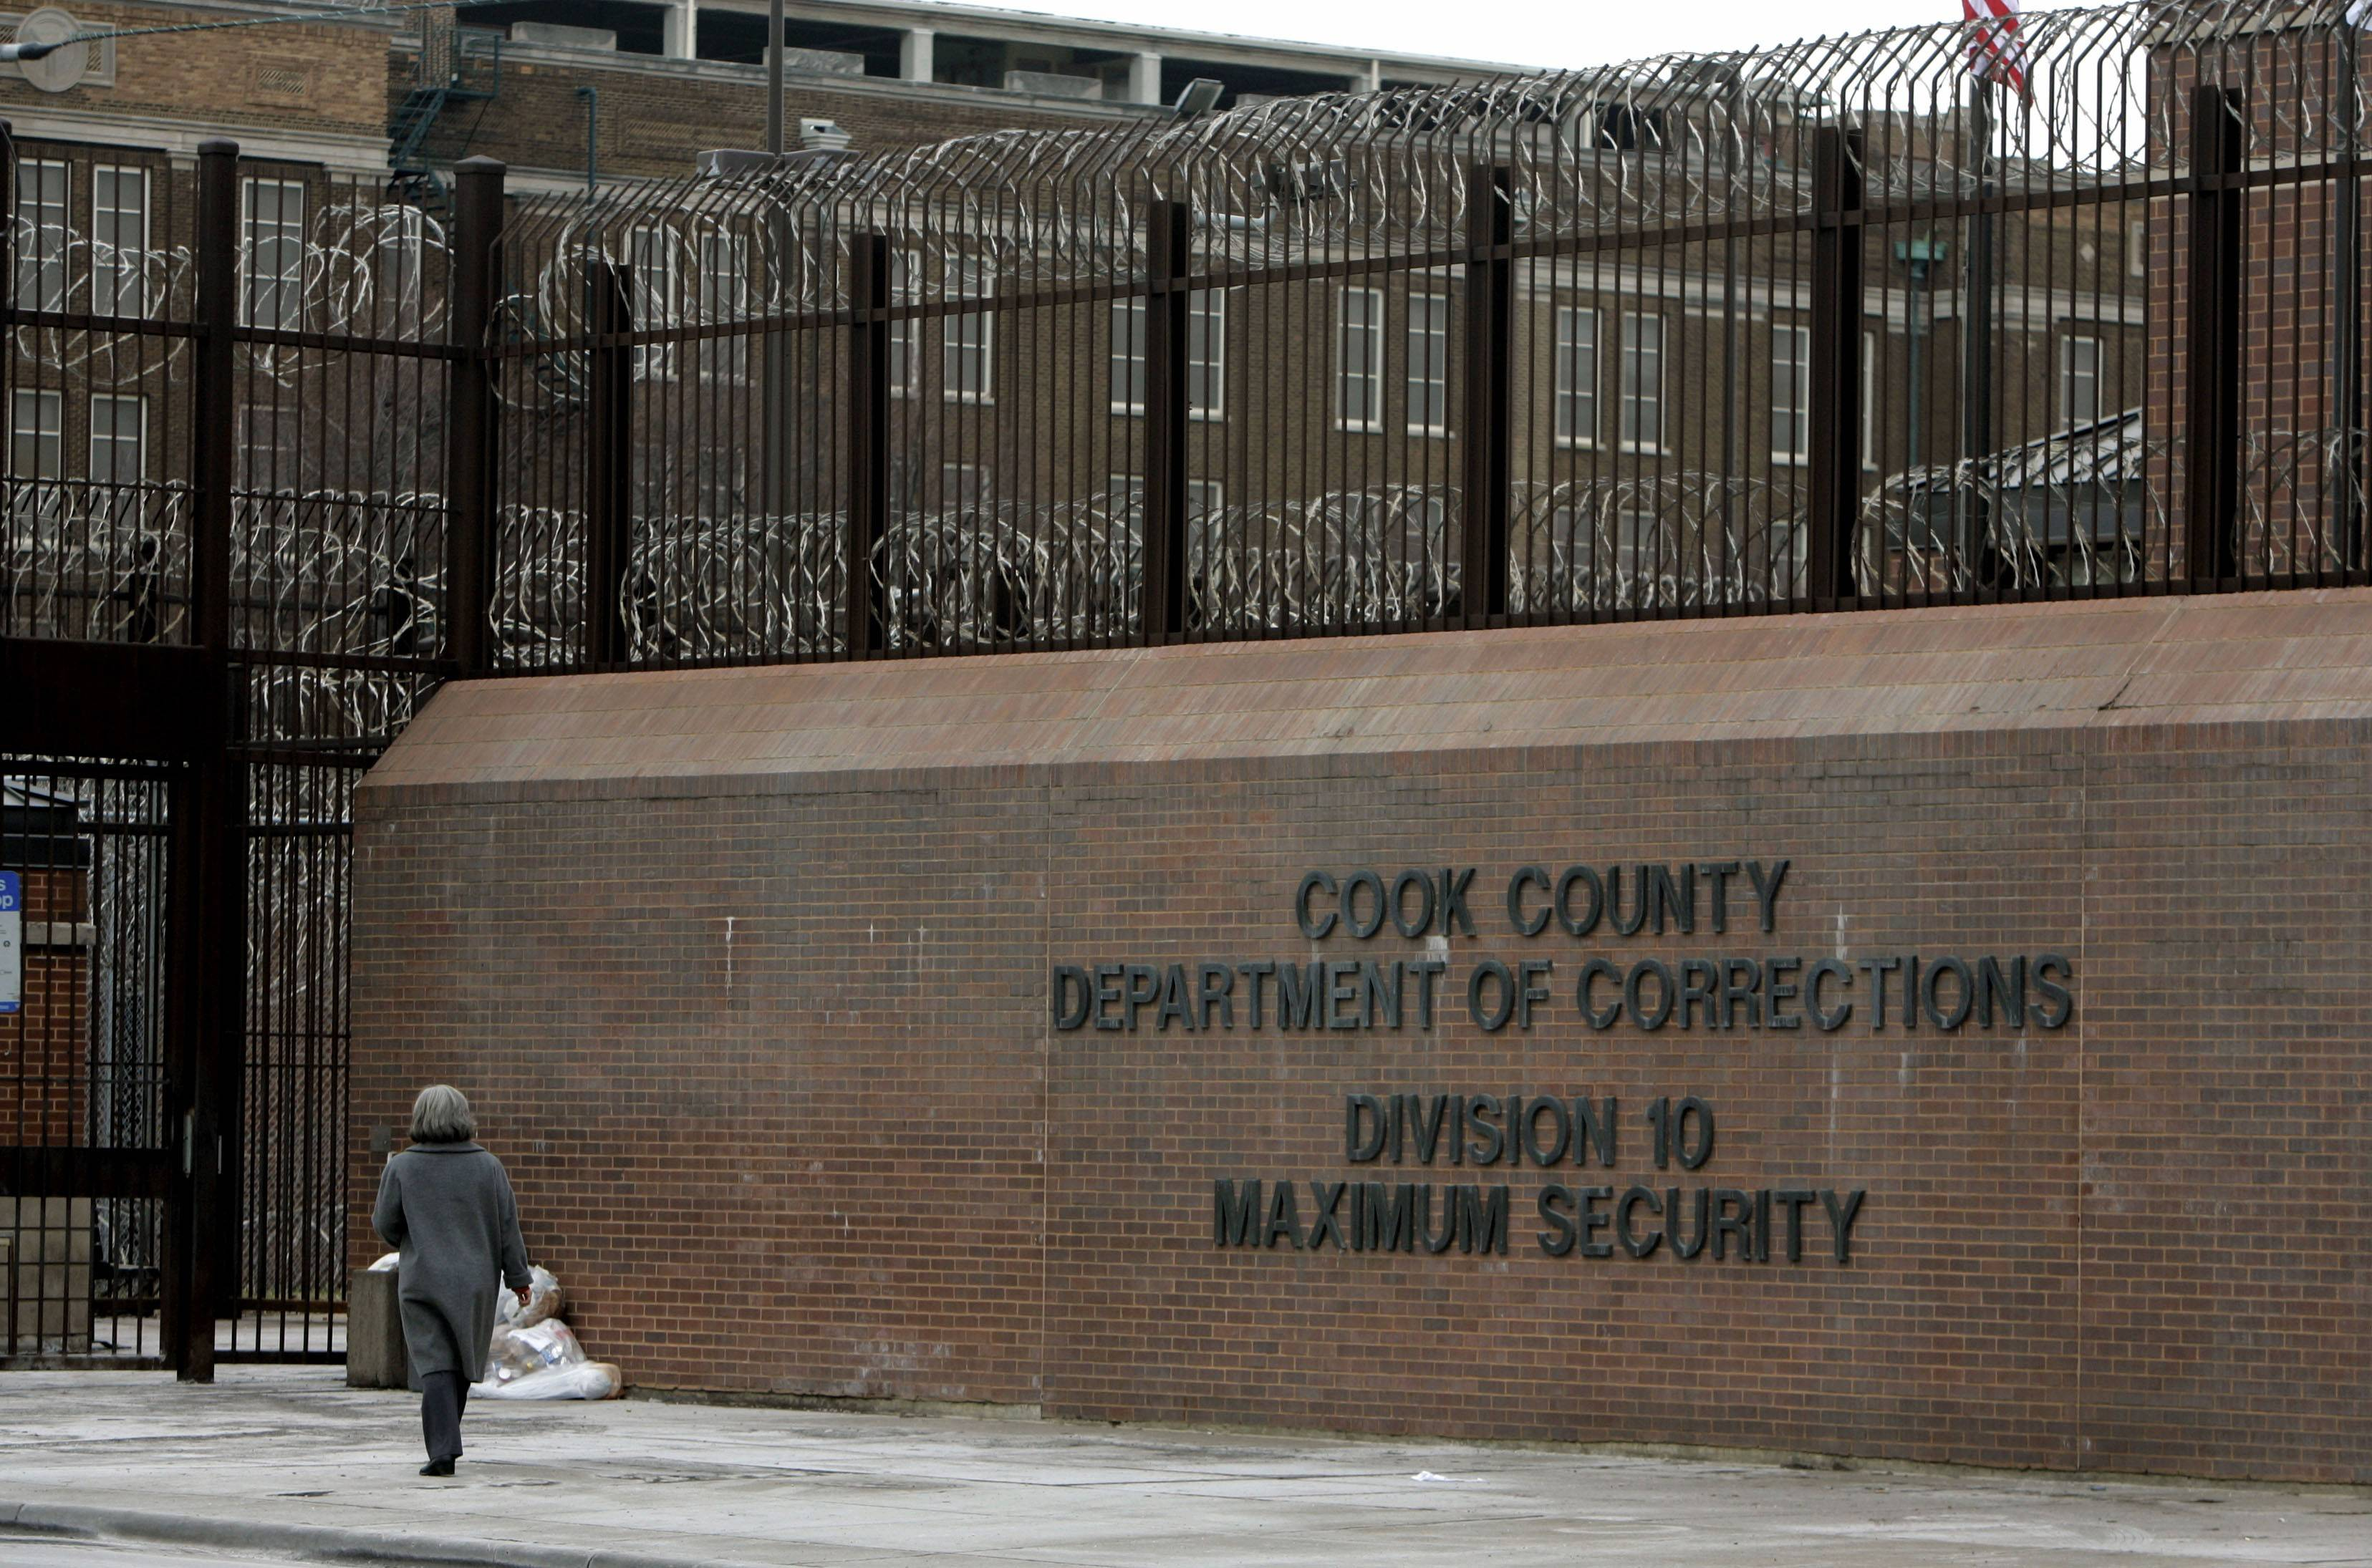 Cook County officials announced plans Wednesday to demolish three buildings at its jail complex in Chicago. The project will save millions of dollars and reduce jail capacity by about 15 percent, proponents say.